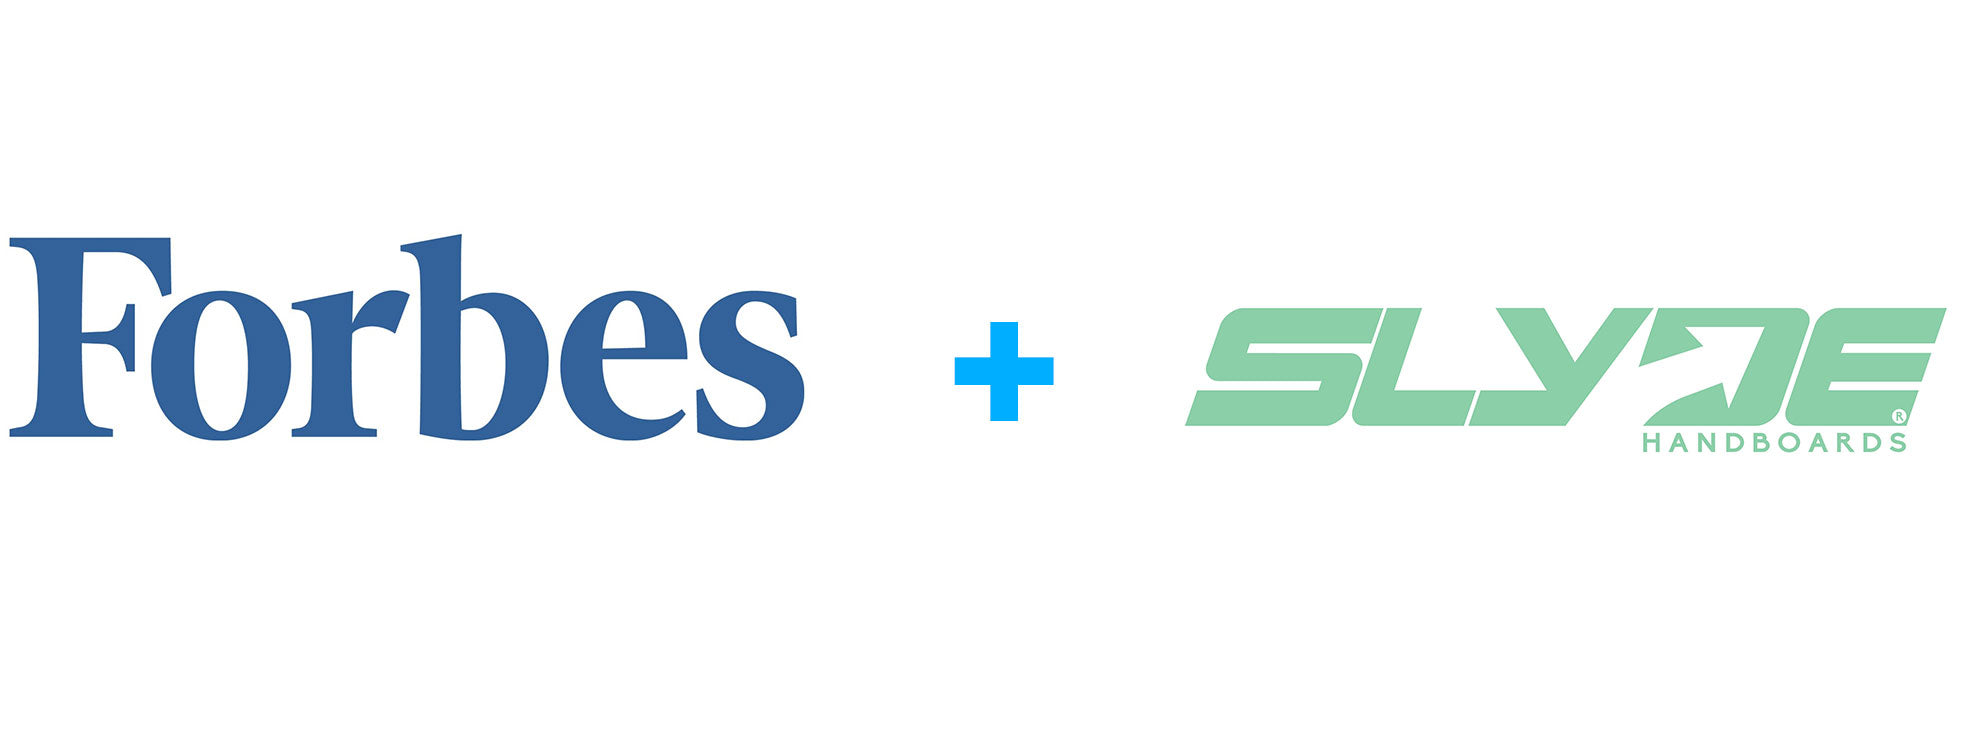 Forbes logo for slydehandboards